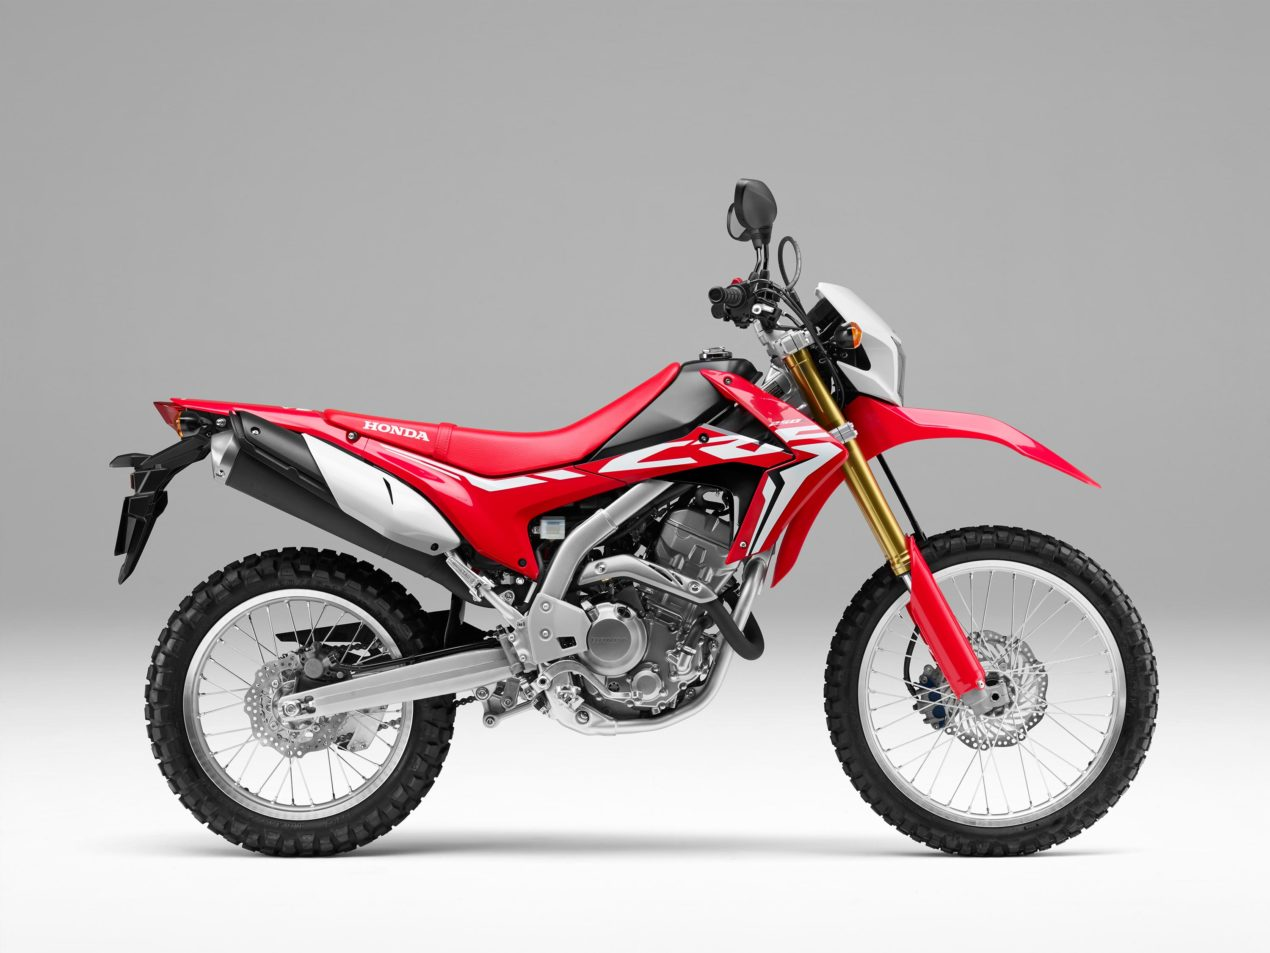 Honda Crf250l Recalled For Wiring Harness Malfunctions